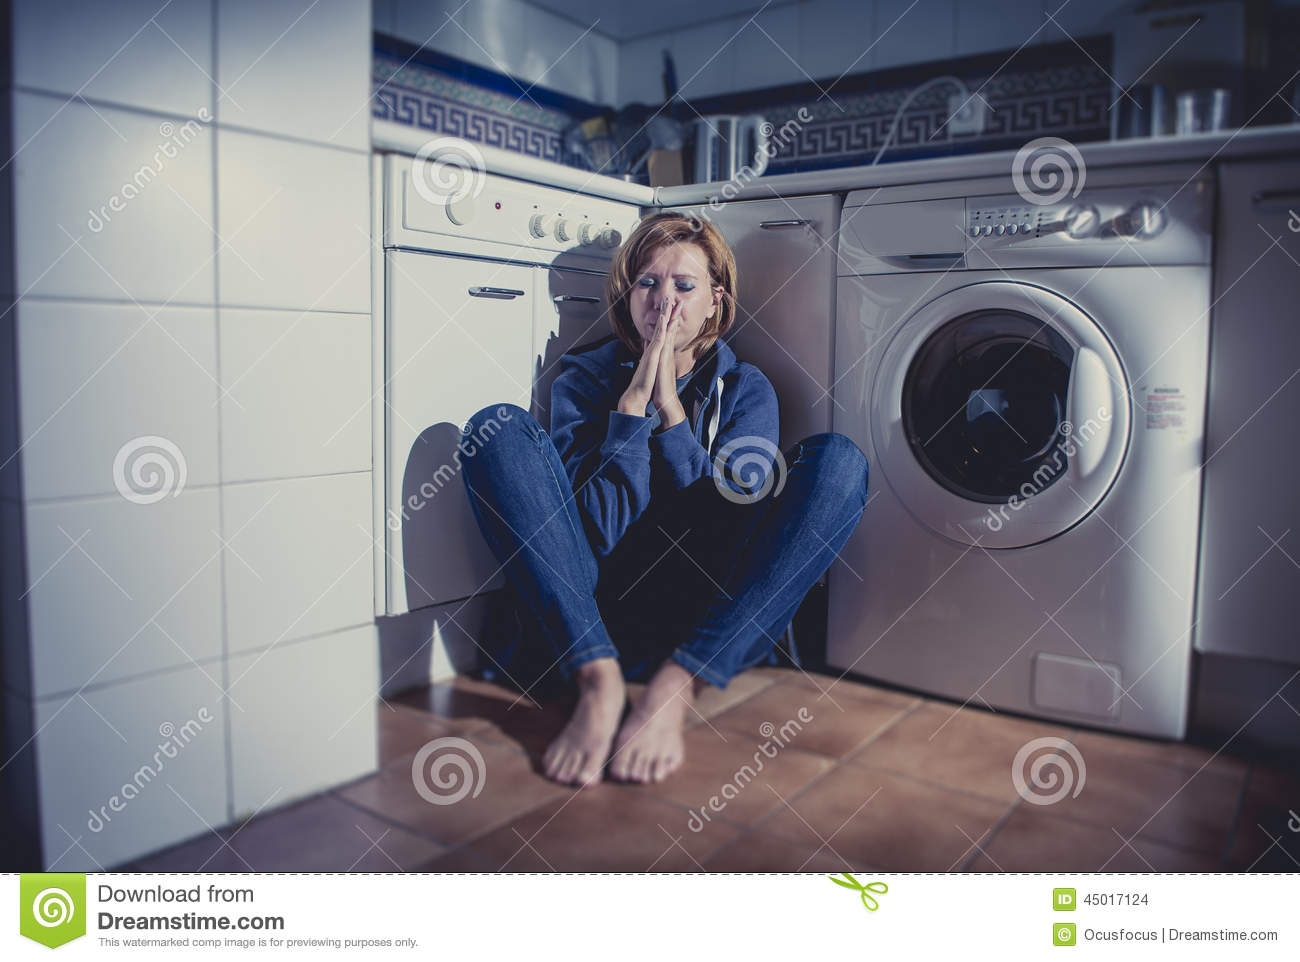 Lonely And Sick Woman Sitting On Kitchen Floor In Stress